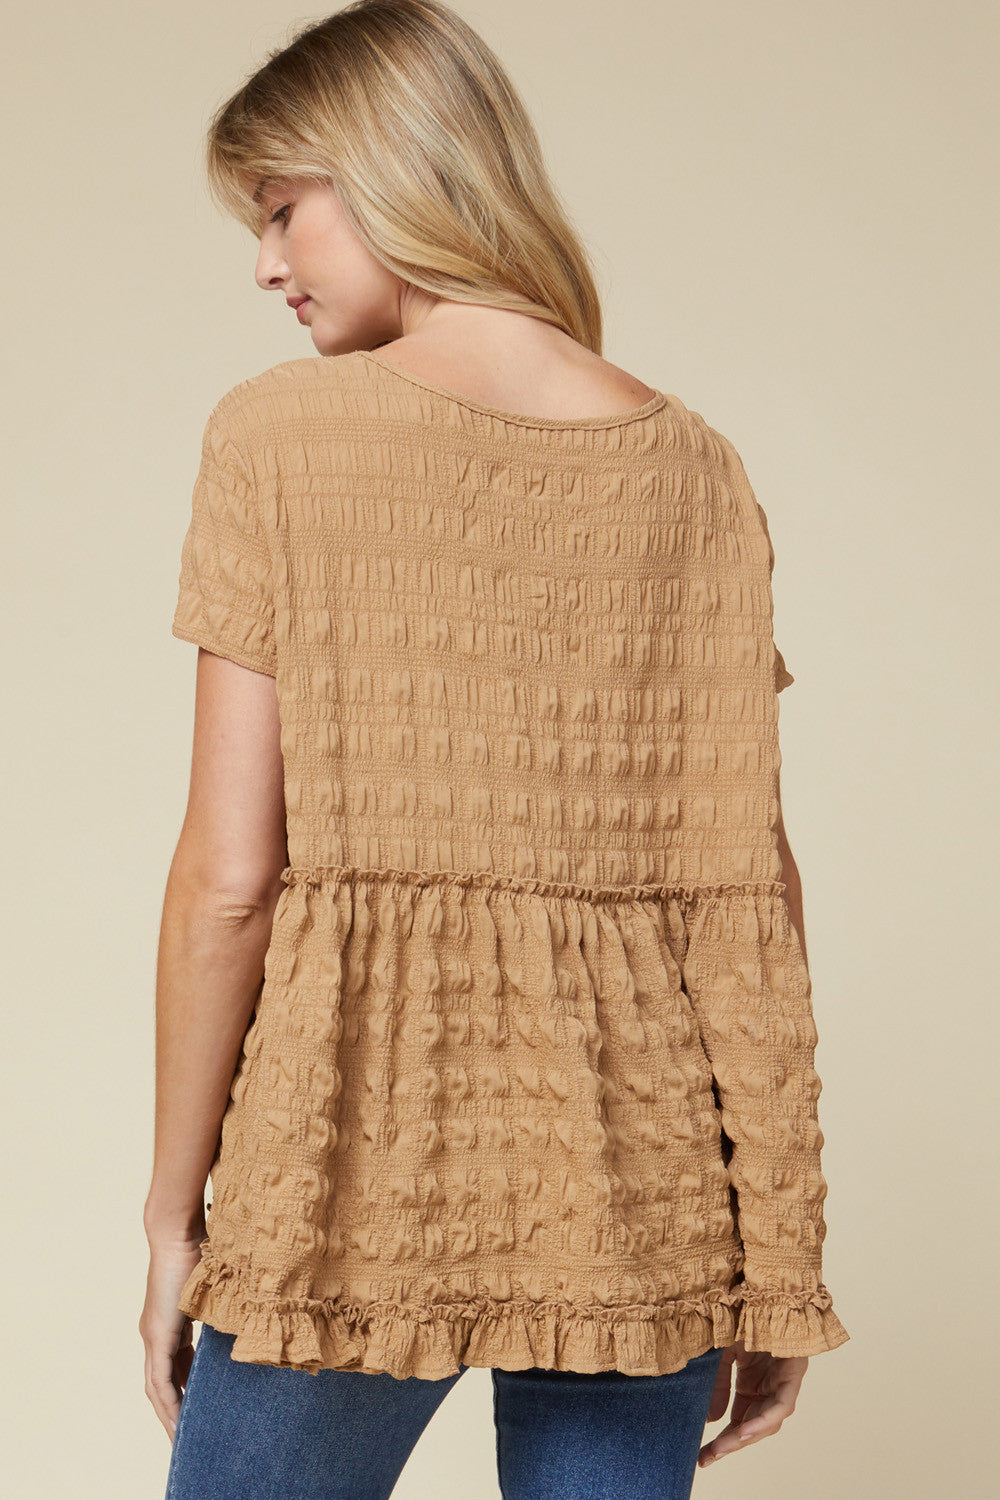 Textured Frill Trim Babydoll Top